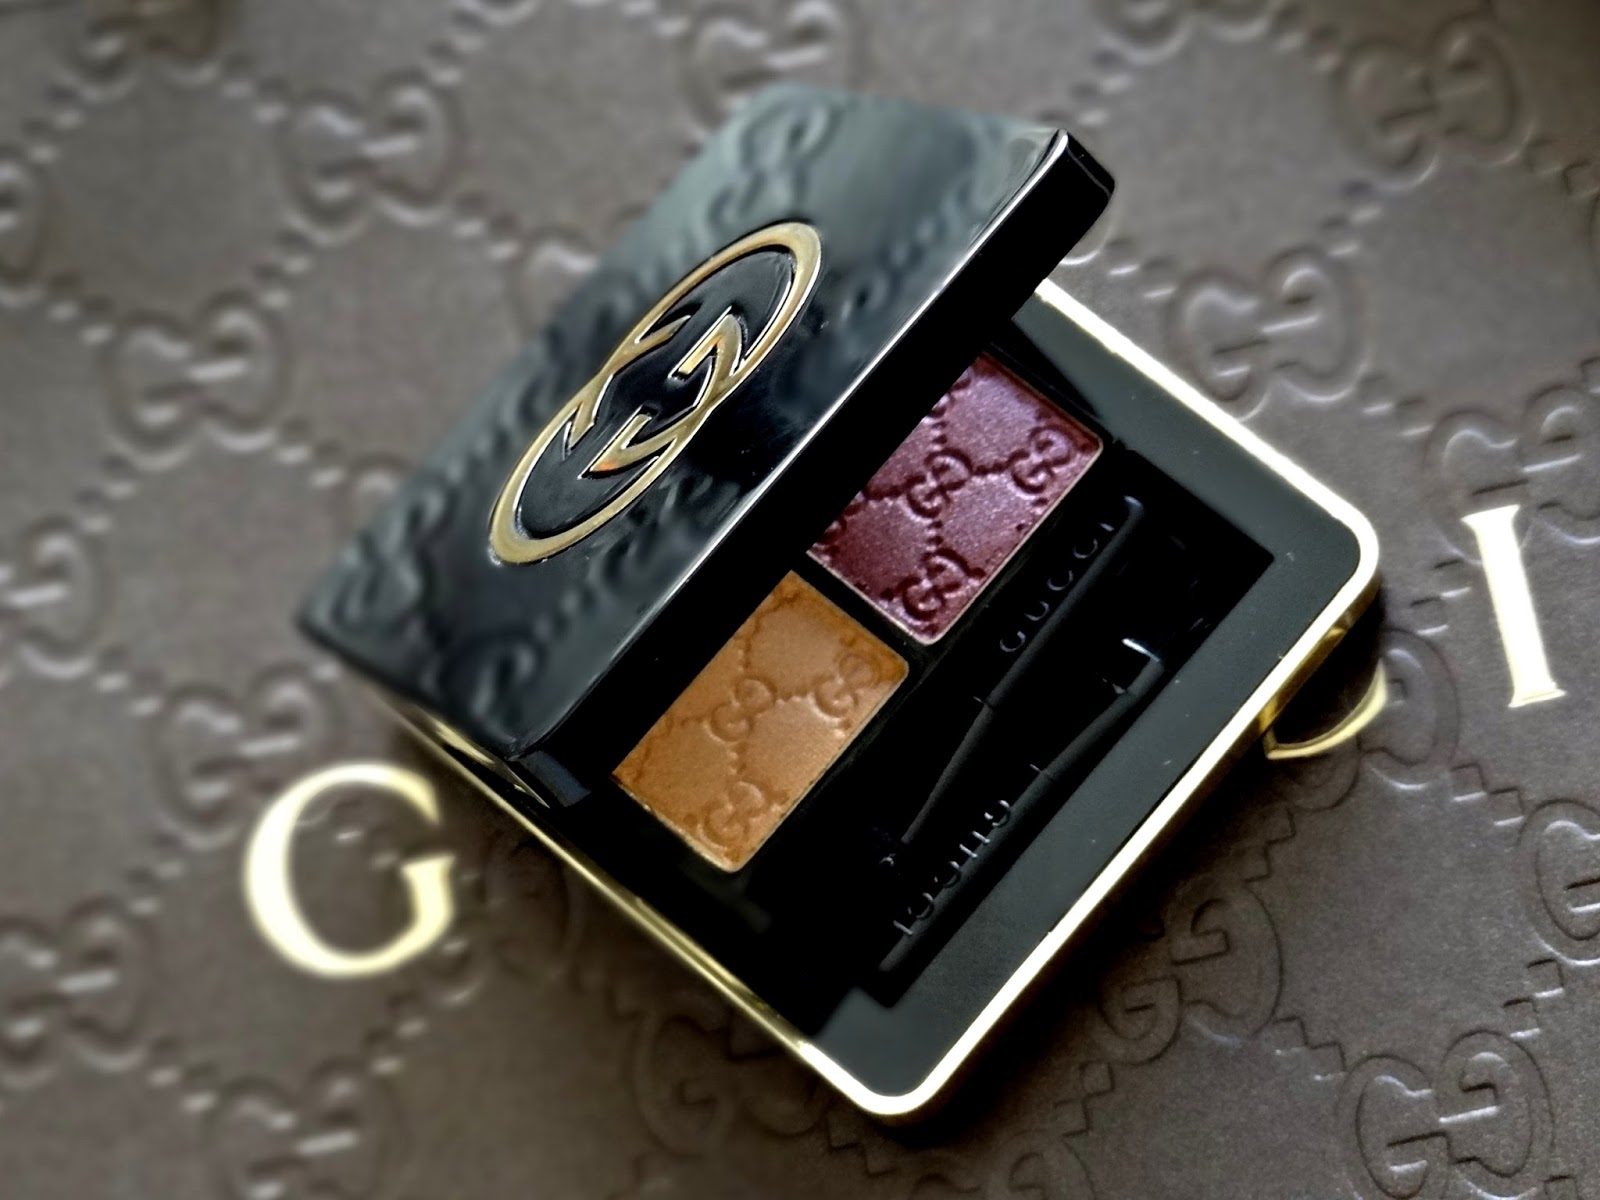 Gucci Beauty Magnetic Color Eye Shadow Duo in Azalea 030